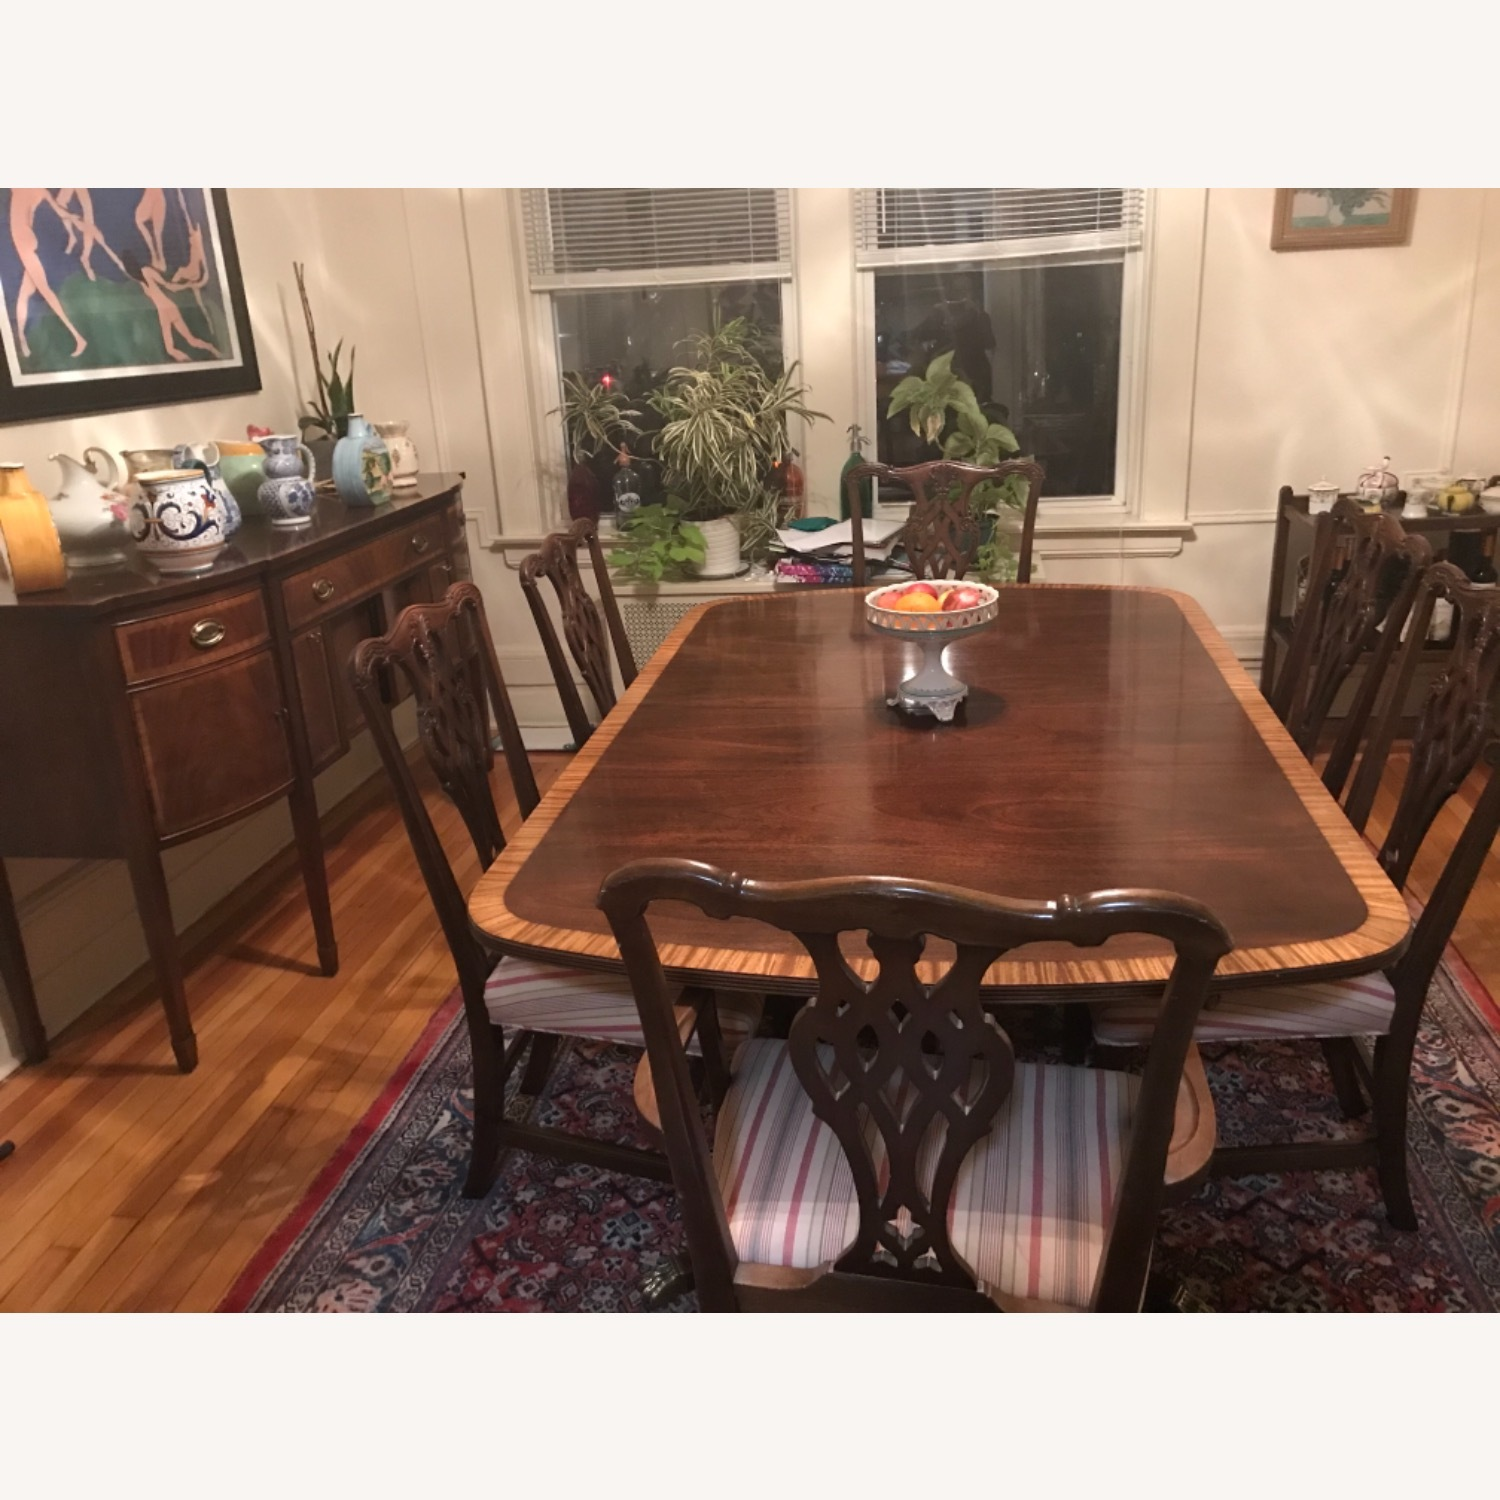 Mahogany Dining Set with 2 Leaves and 6 Chairs - image-1